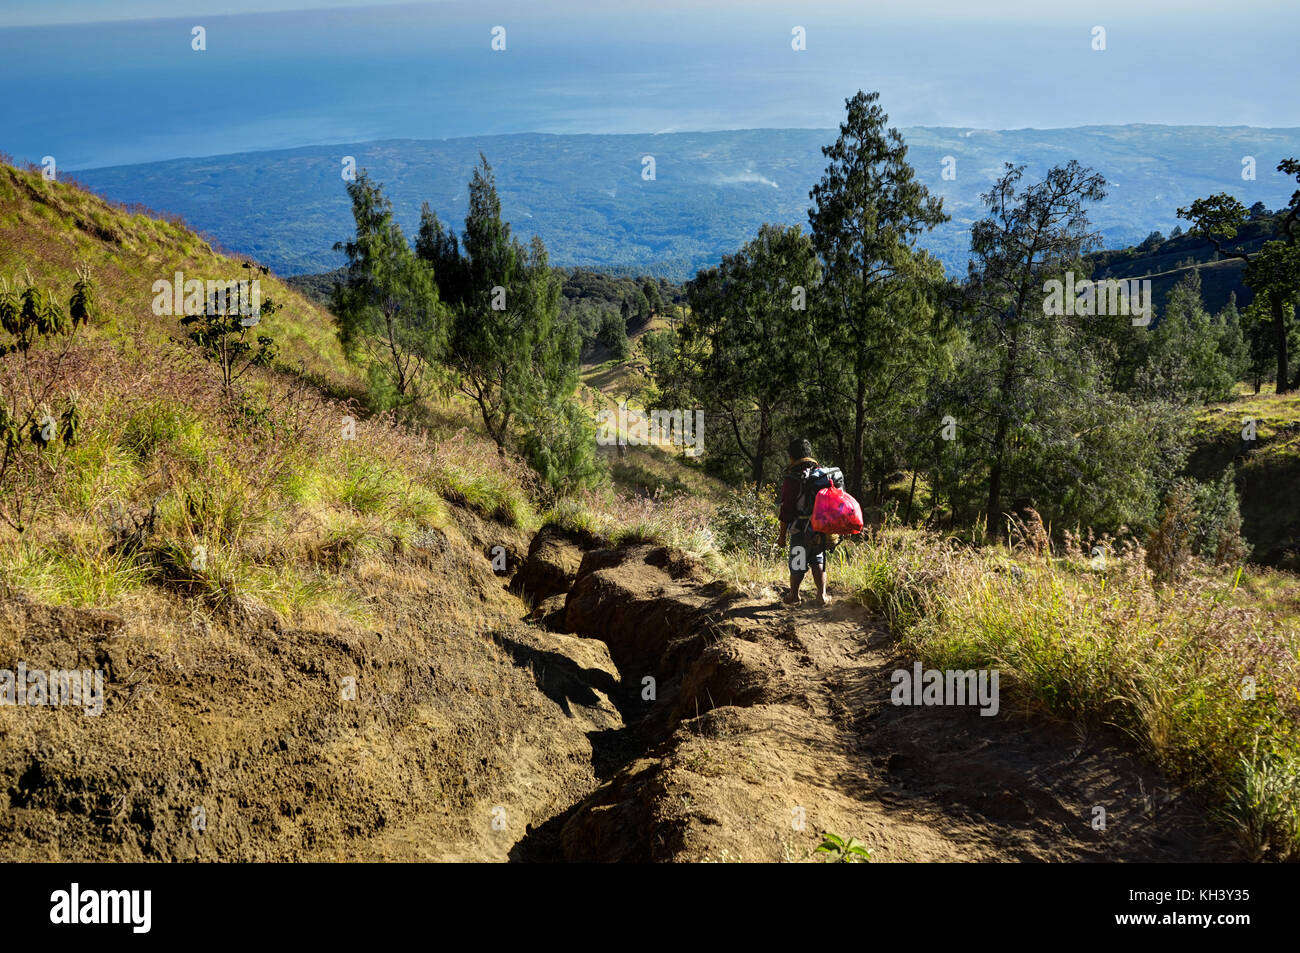 Mount Rinjani Lombok Indonesia way down - Stock Image